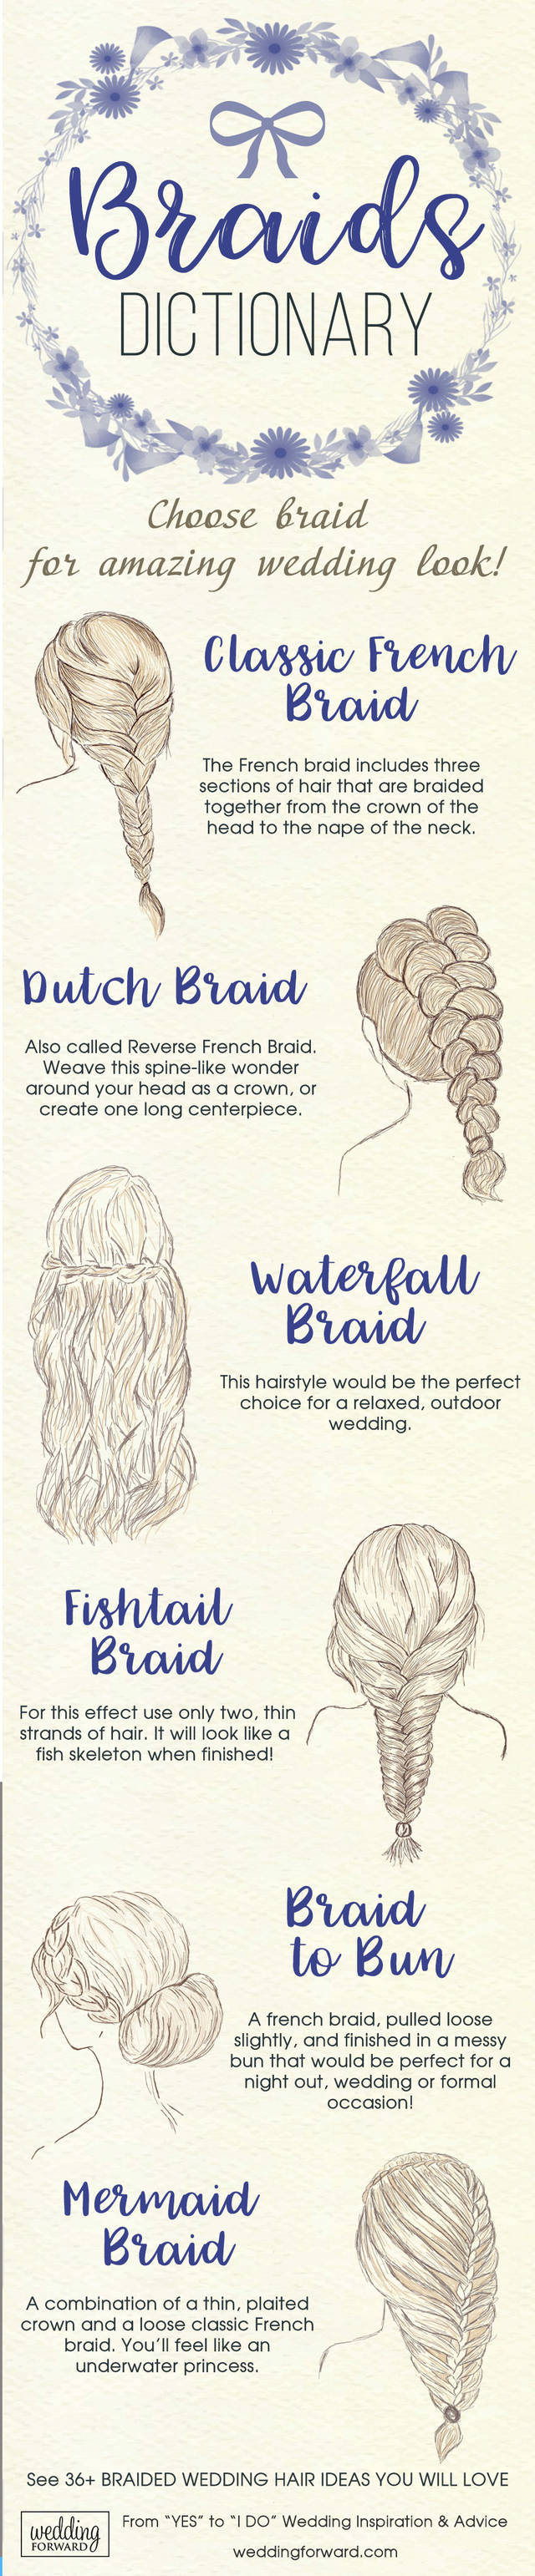 Braids dictionary